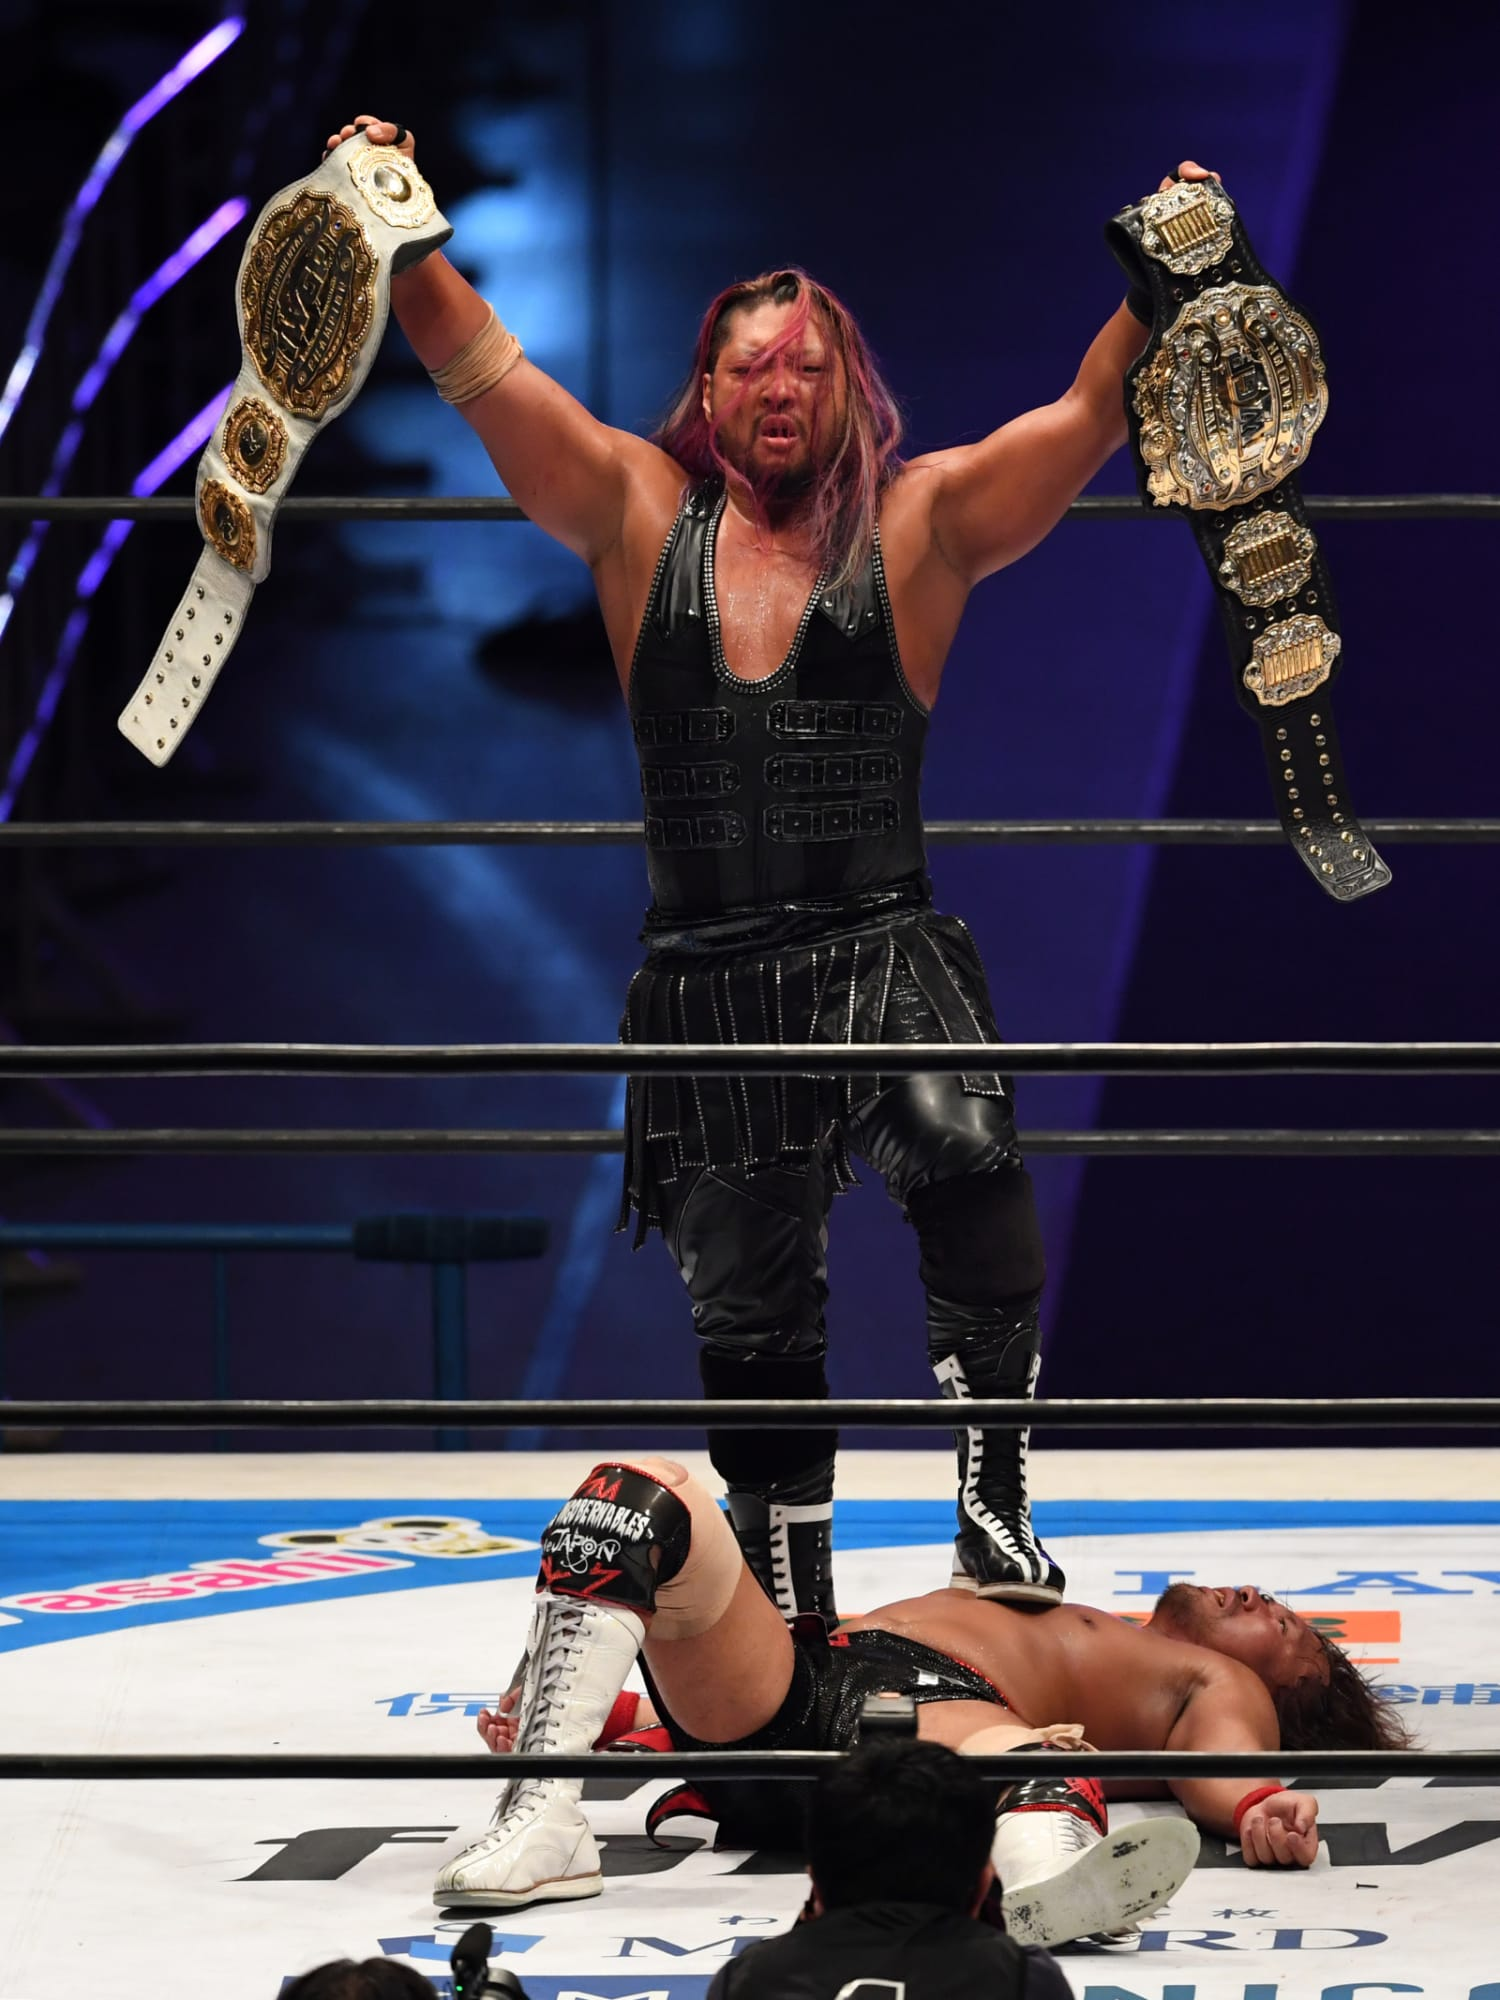 NJPW: Why coronating Evil as the top villain and double champion is a shrewd move